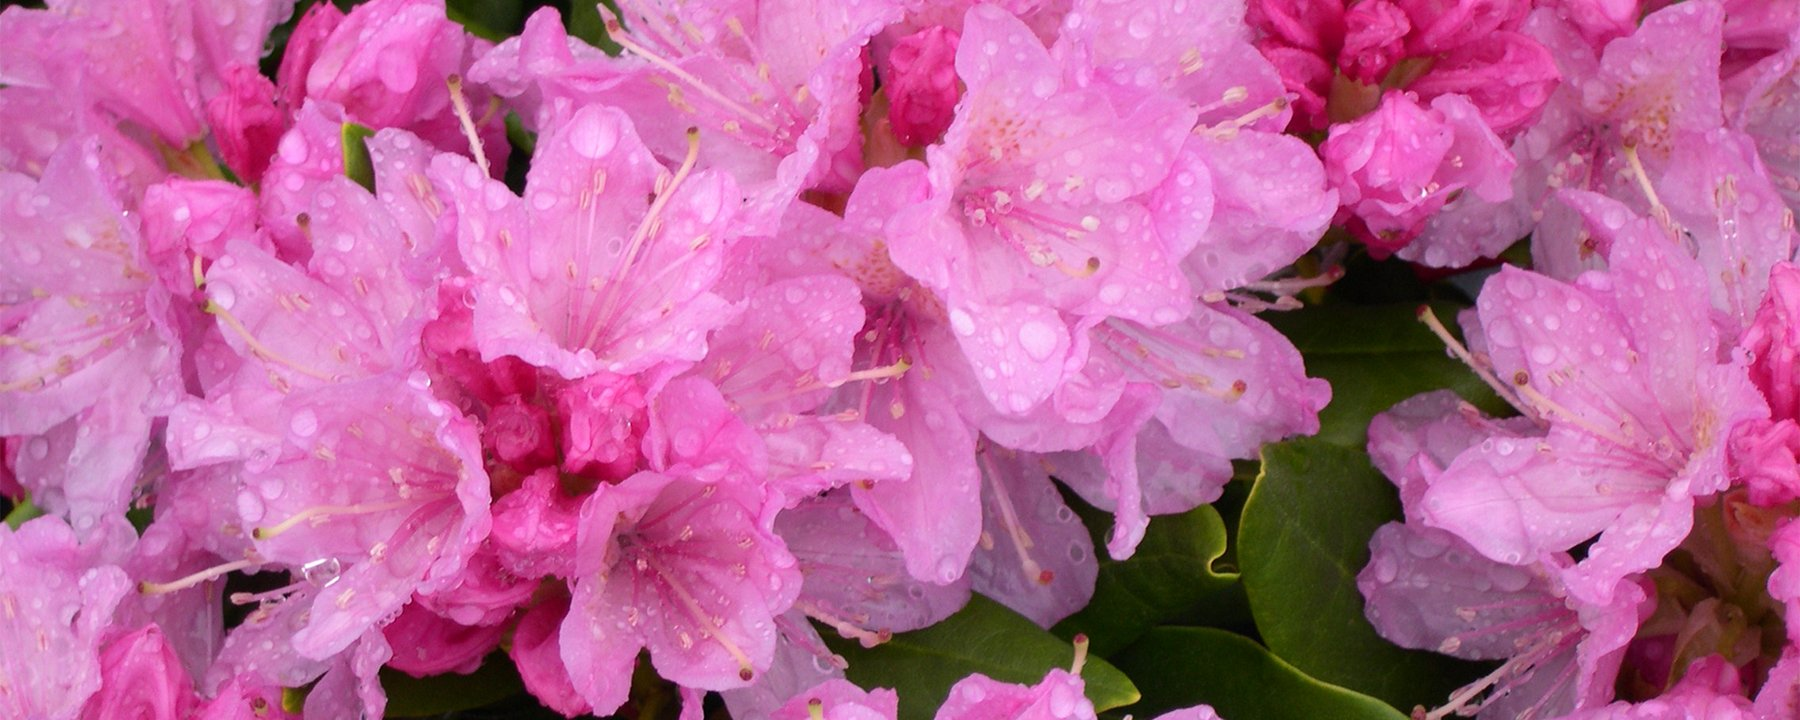 Spring Flowering Rhododendrons at Flowerland